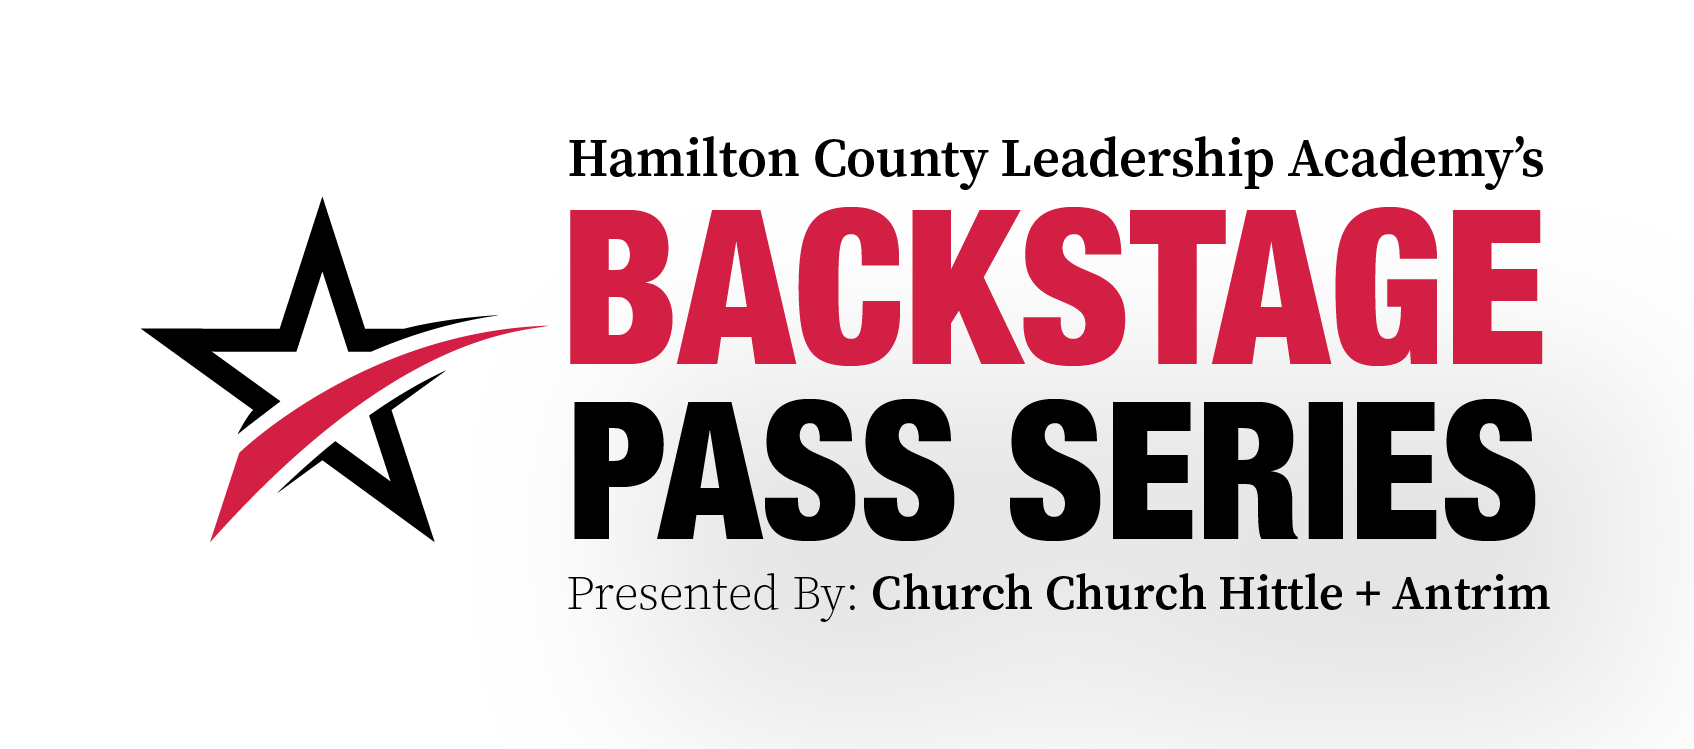 Church Church Hittle + Antrim Partners with Hamilton County Leadership Academy